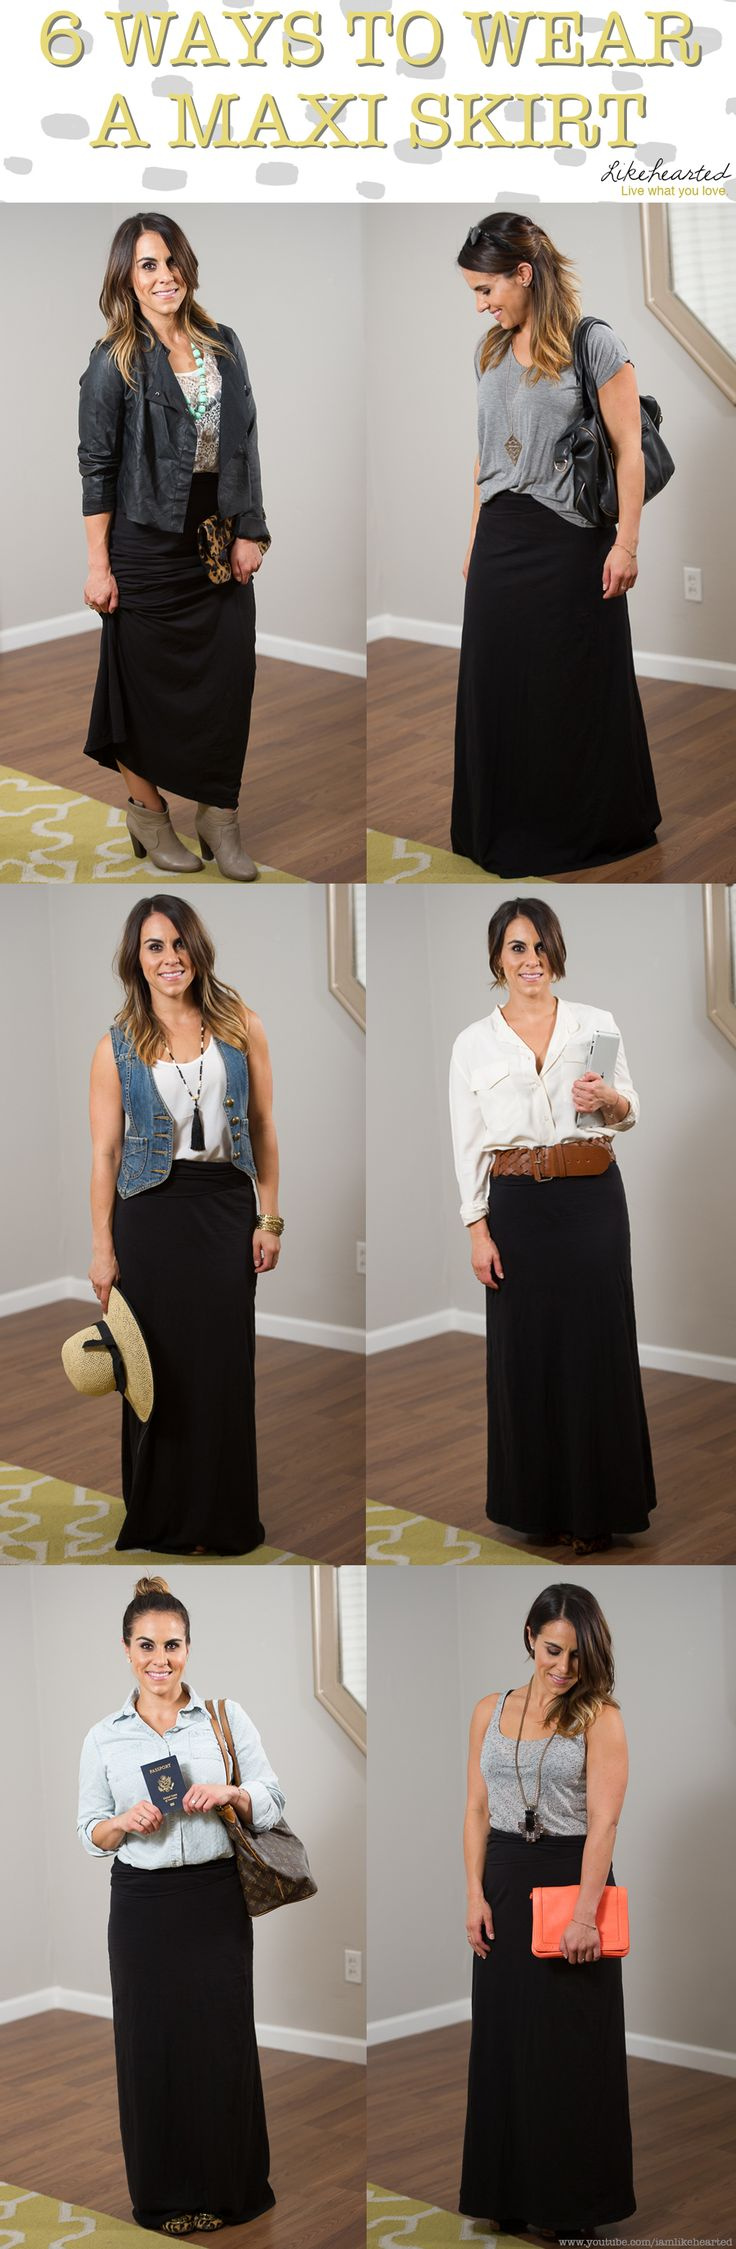 6 ways to wear a maxi skirt